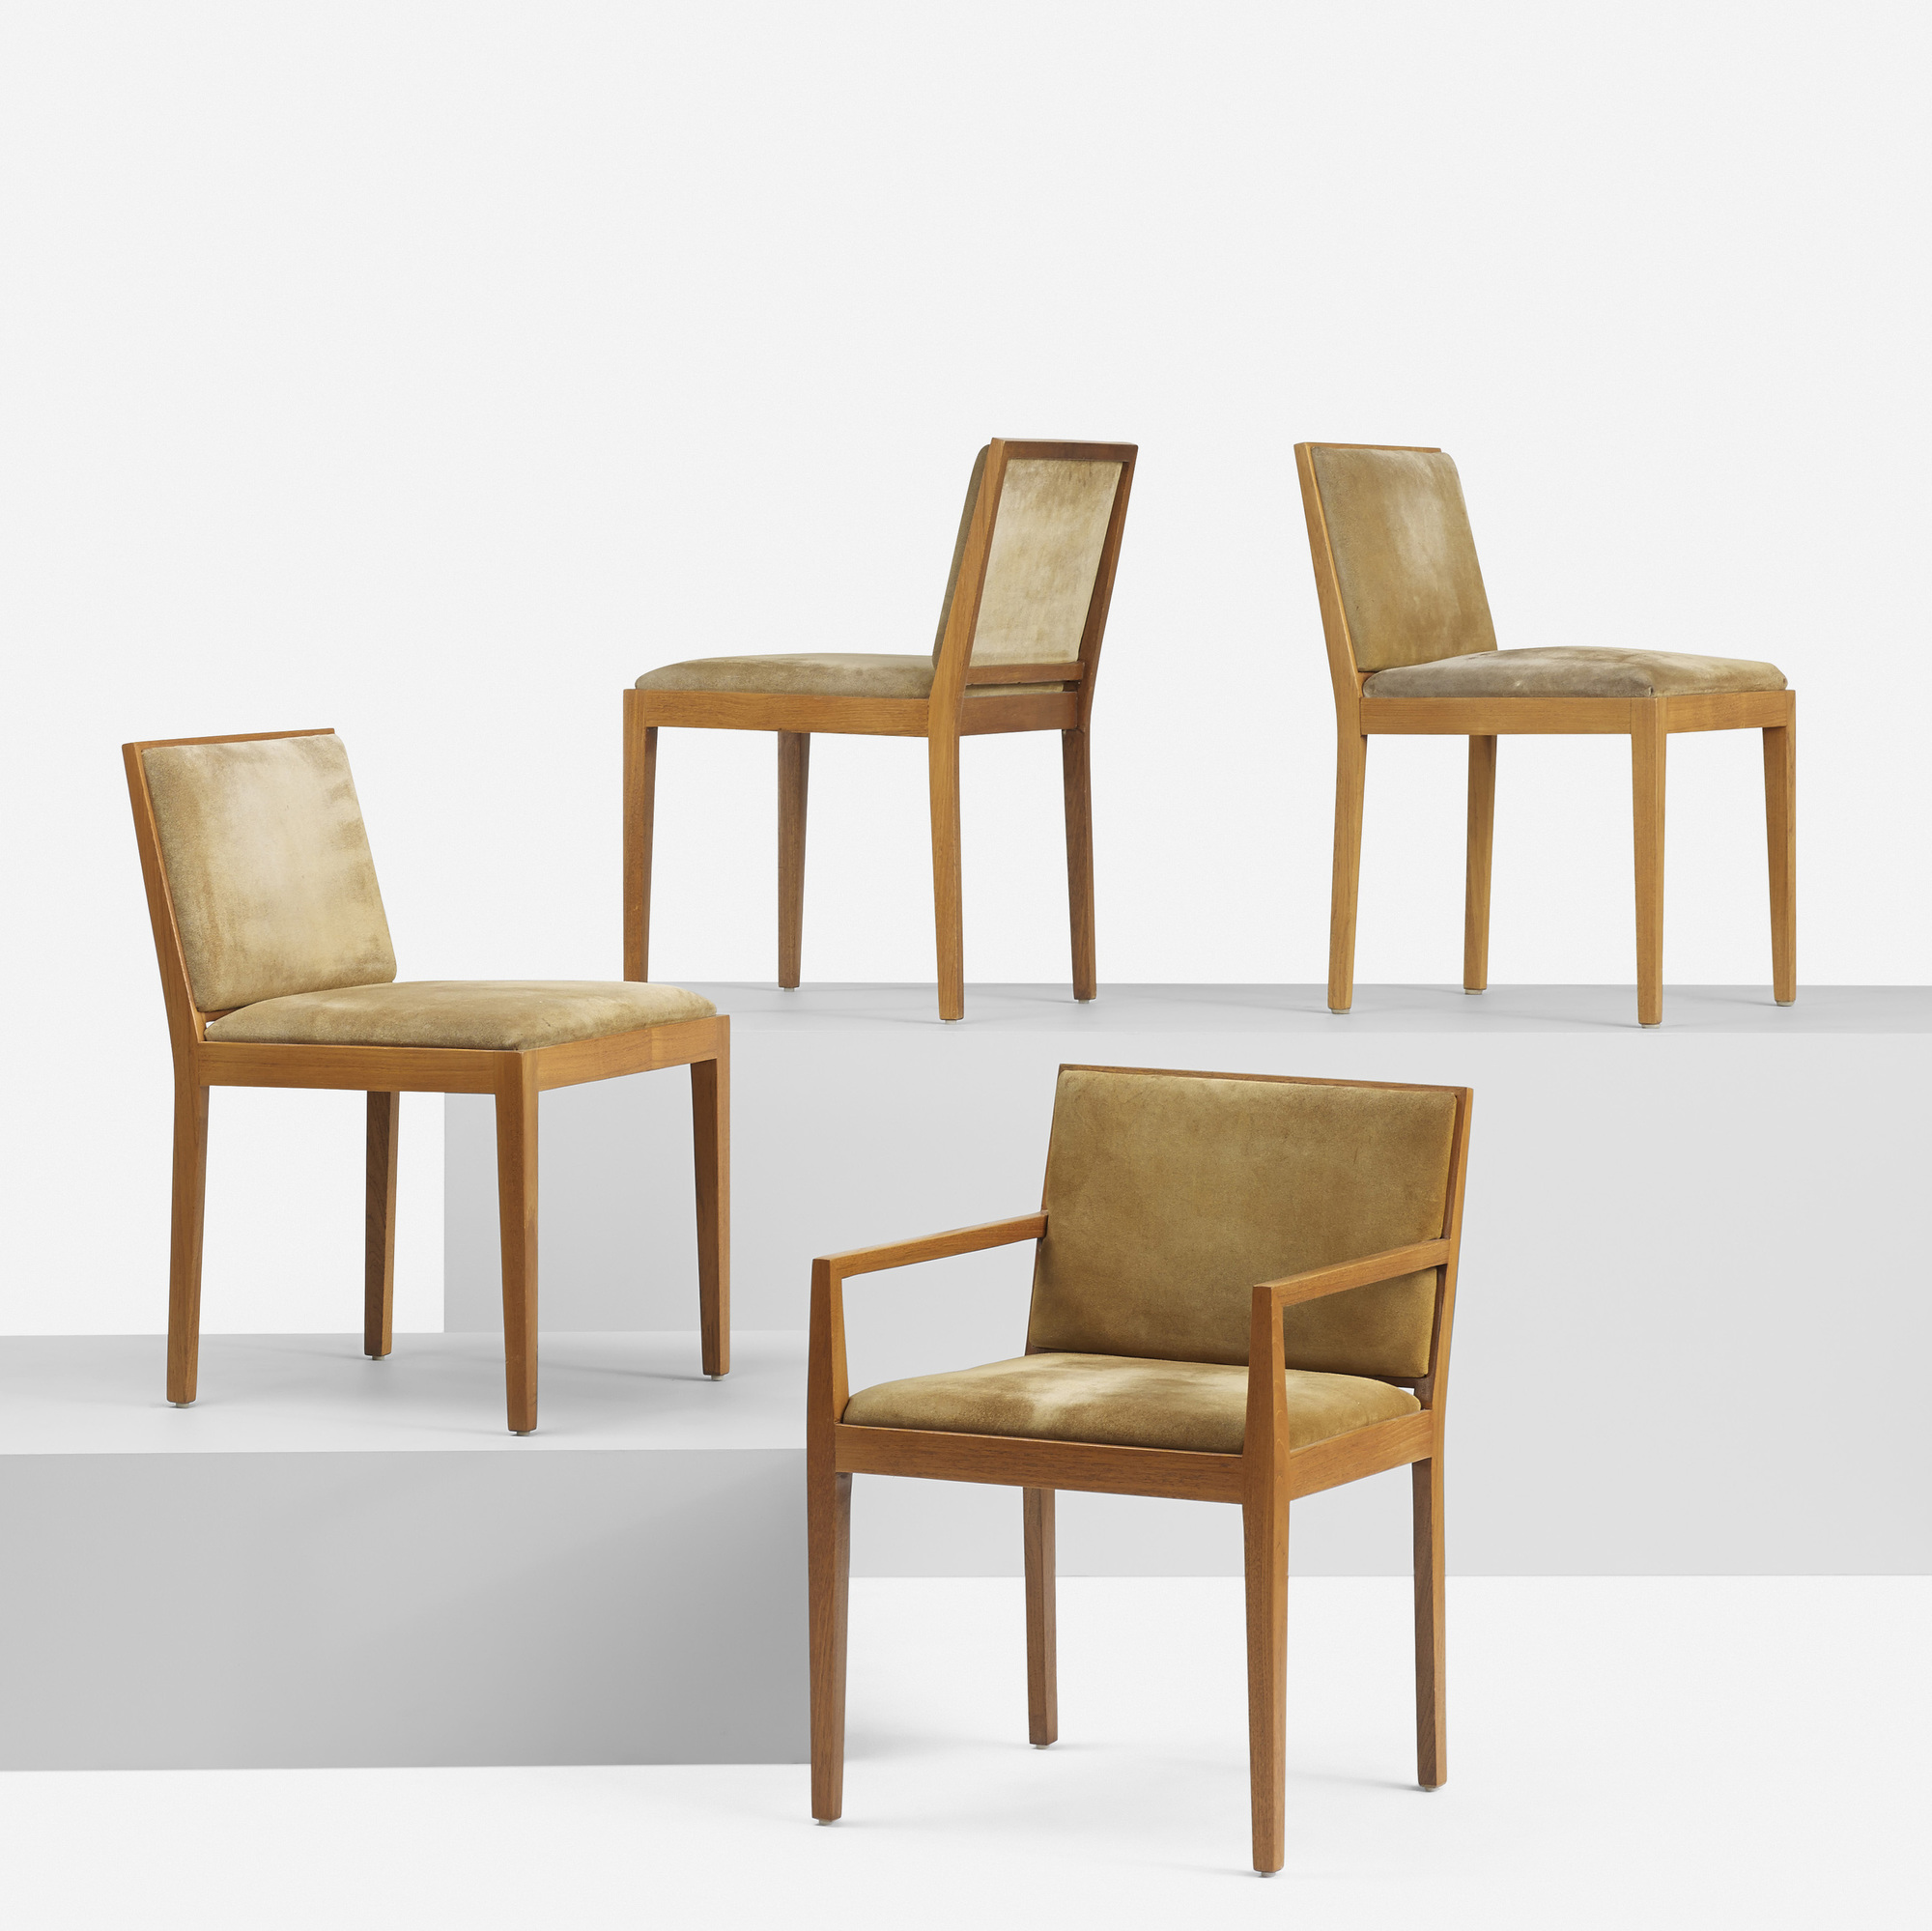 154: Ludwig Mies van der Rohe / set of eight dining chairs from 860 Lake Shore Drive, Chicago (6 of 6)